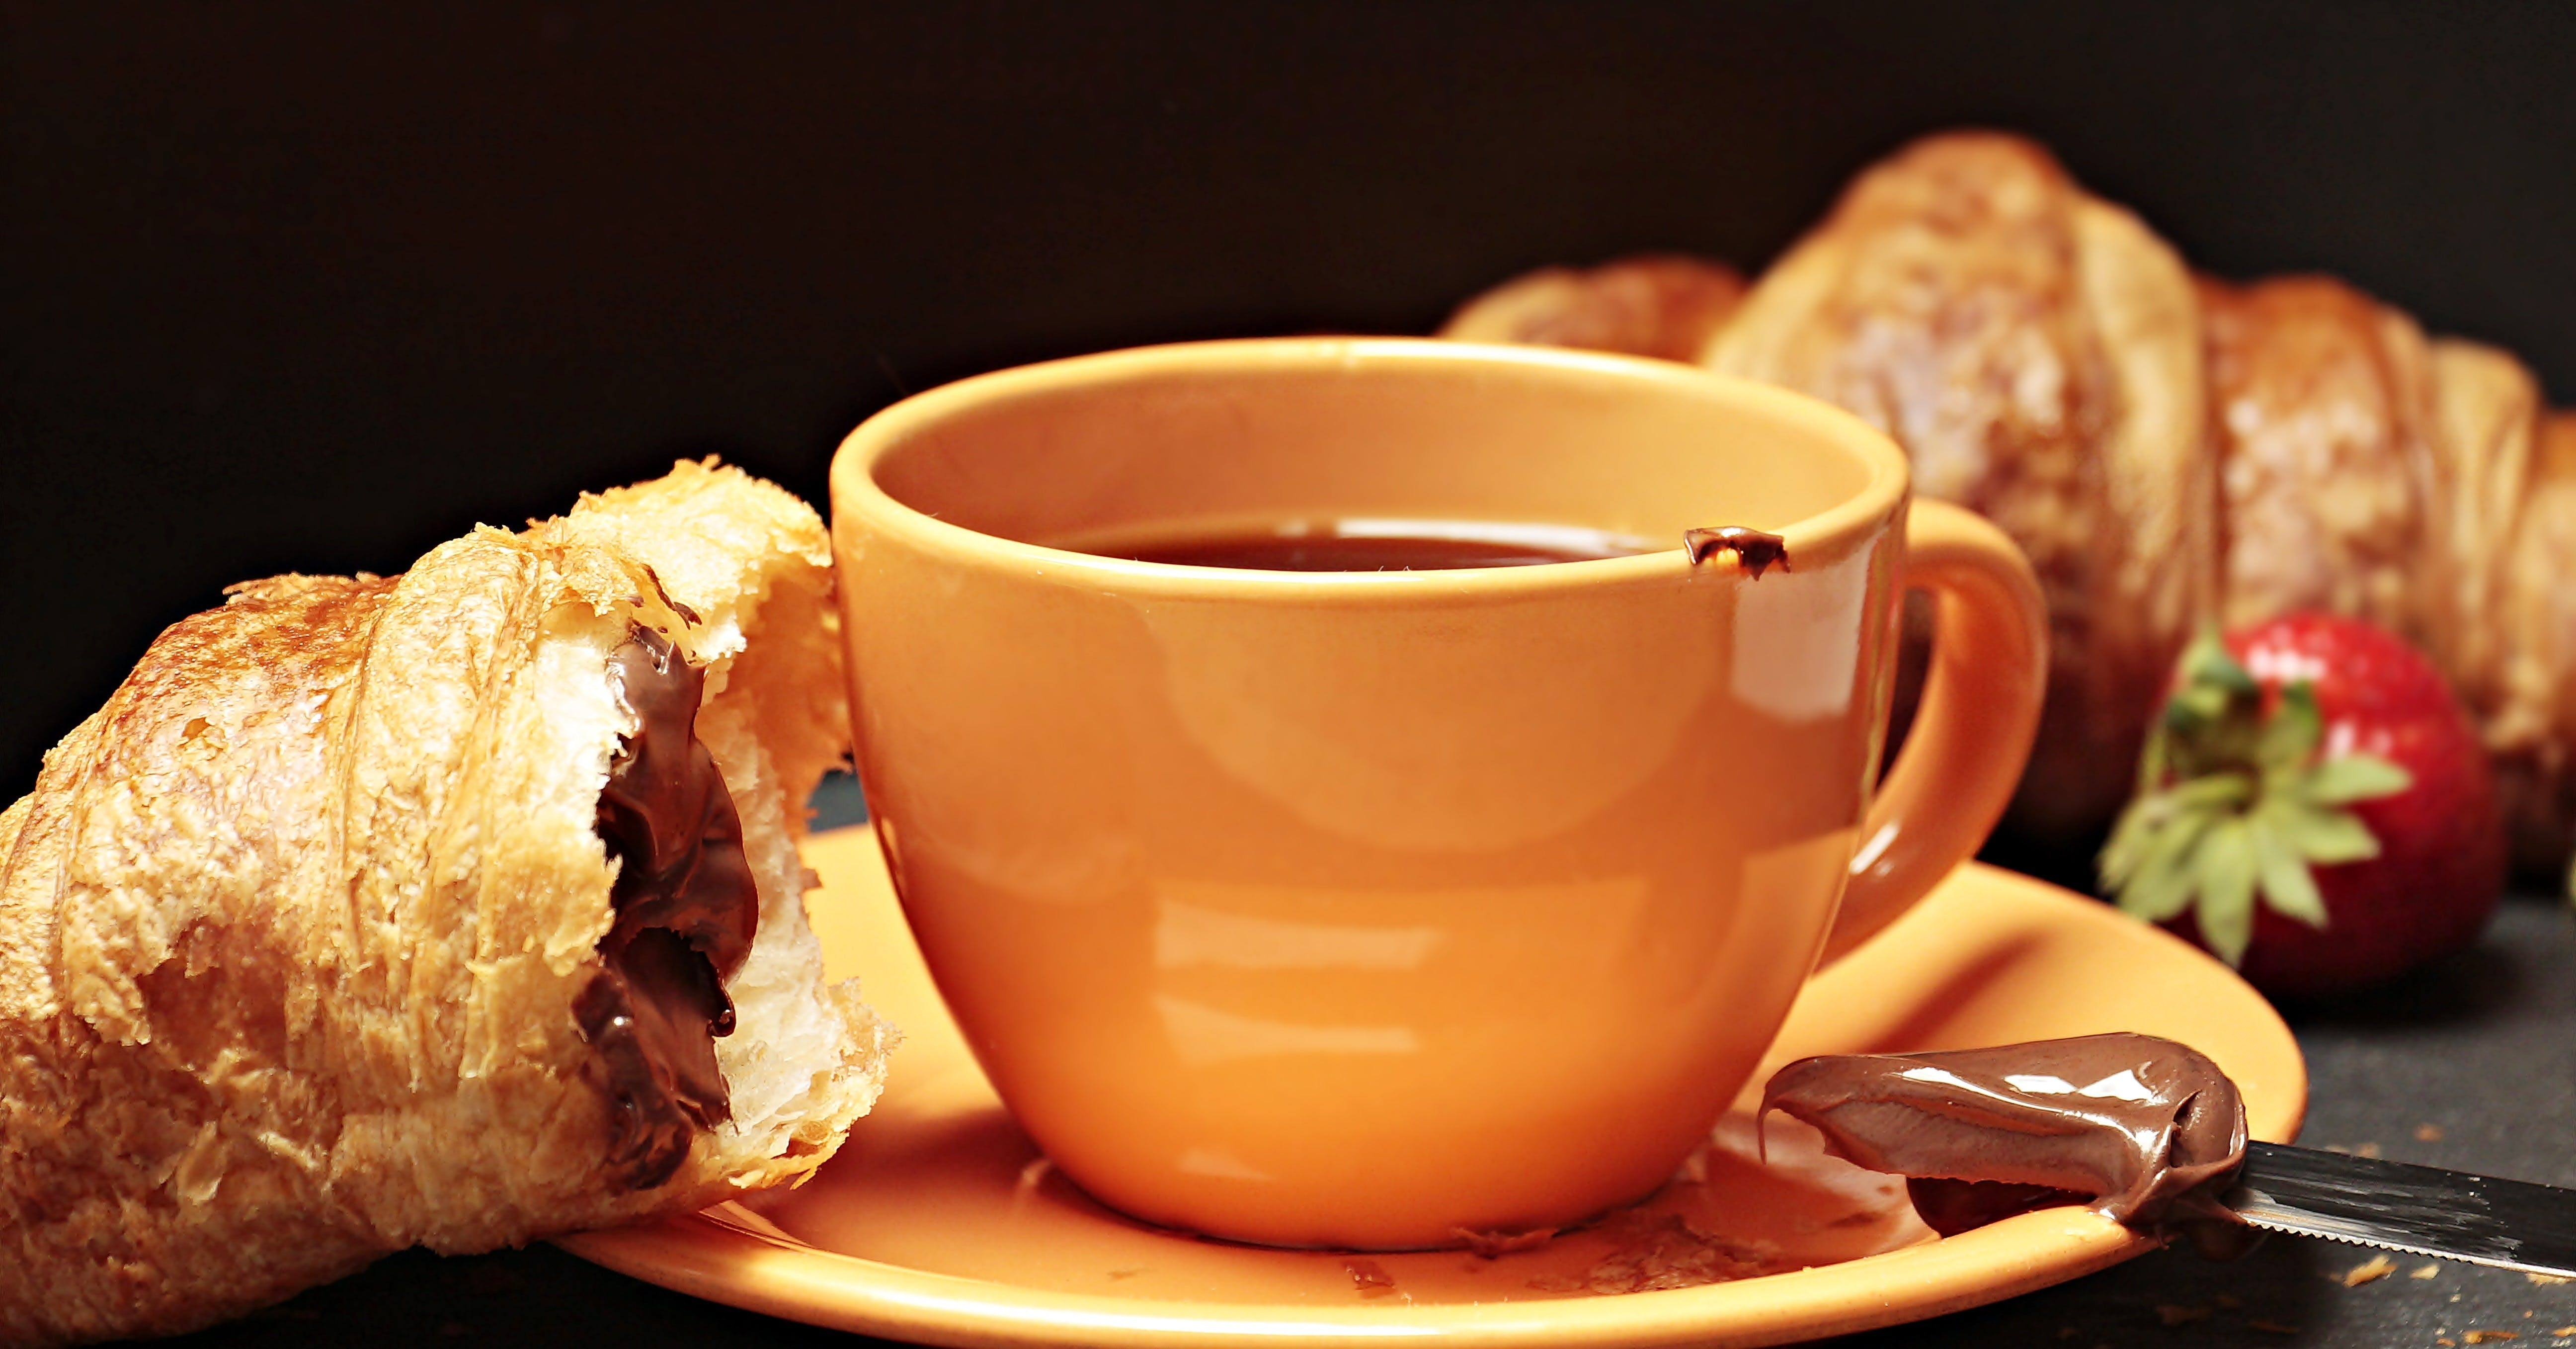 Filled Coffee Cup Beside Bread